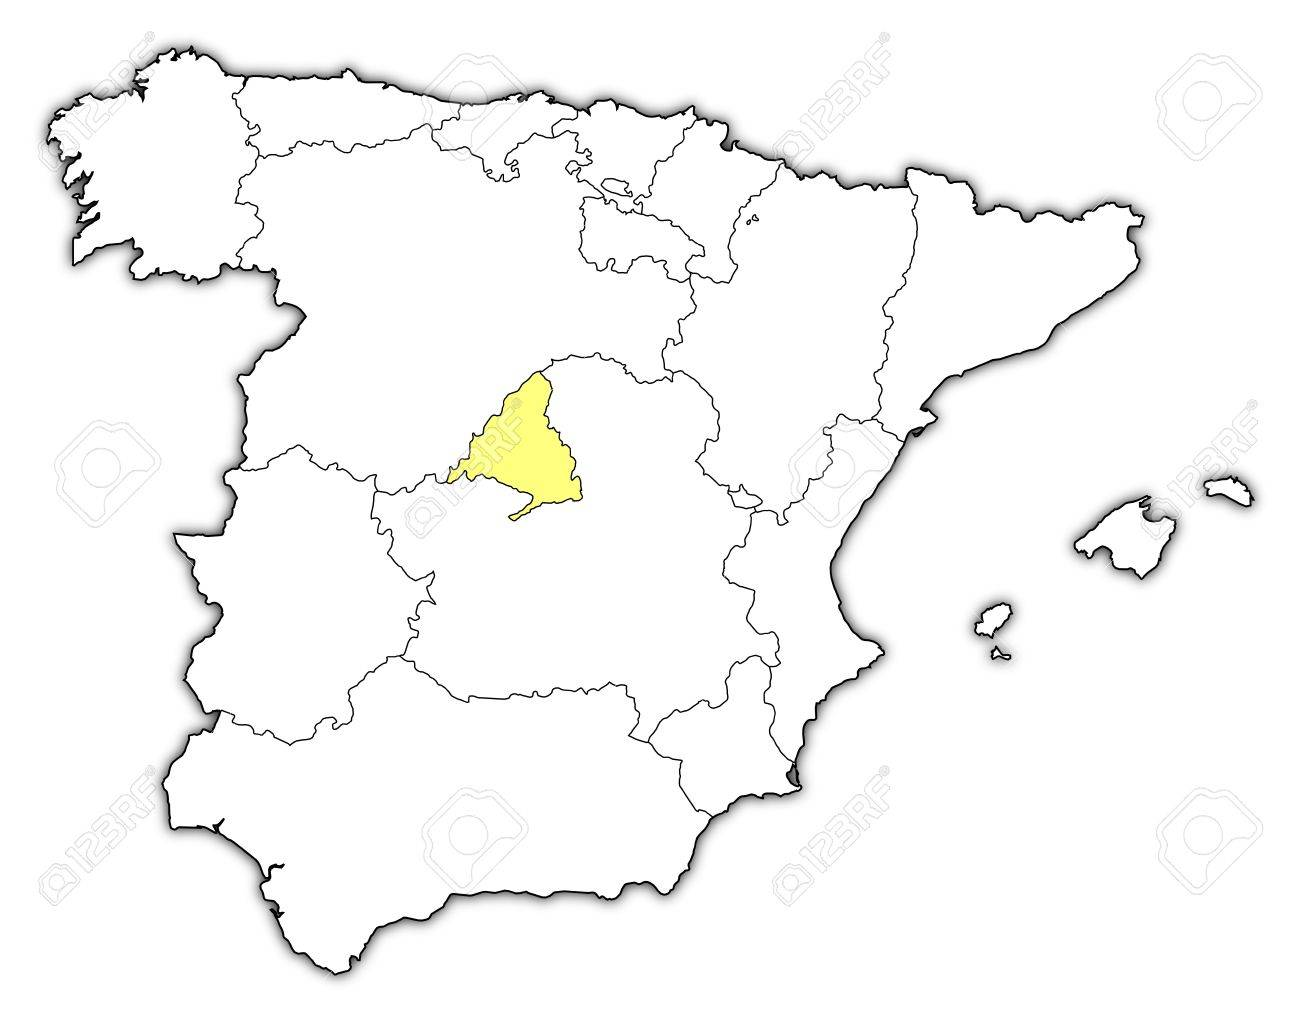 Map Of Spain With Madrid.Political Map Of Spain With The Several Regions Where Madrid